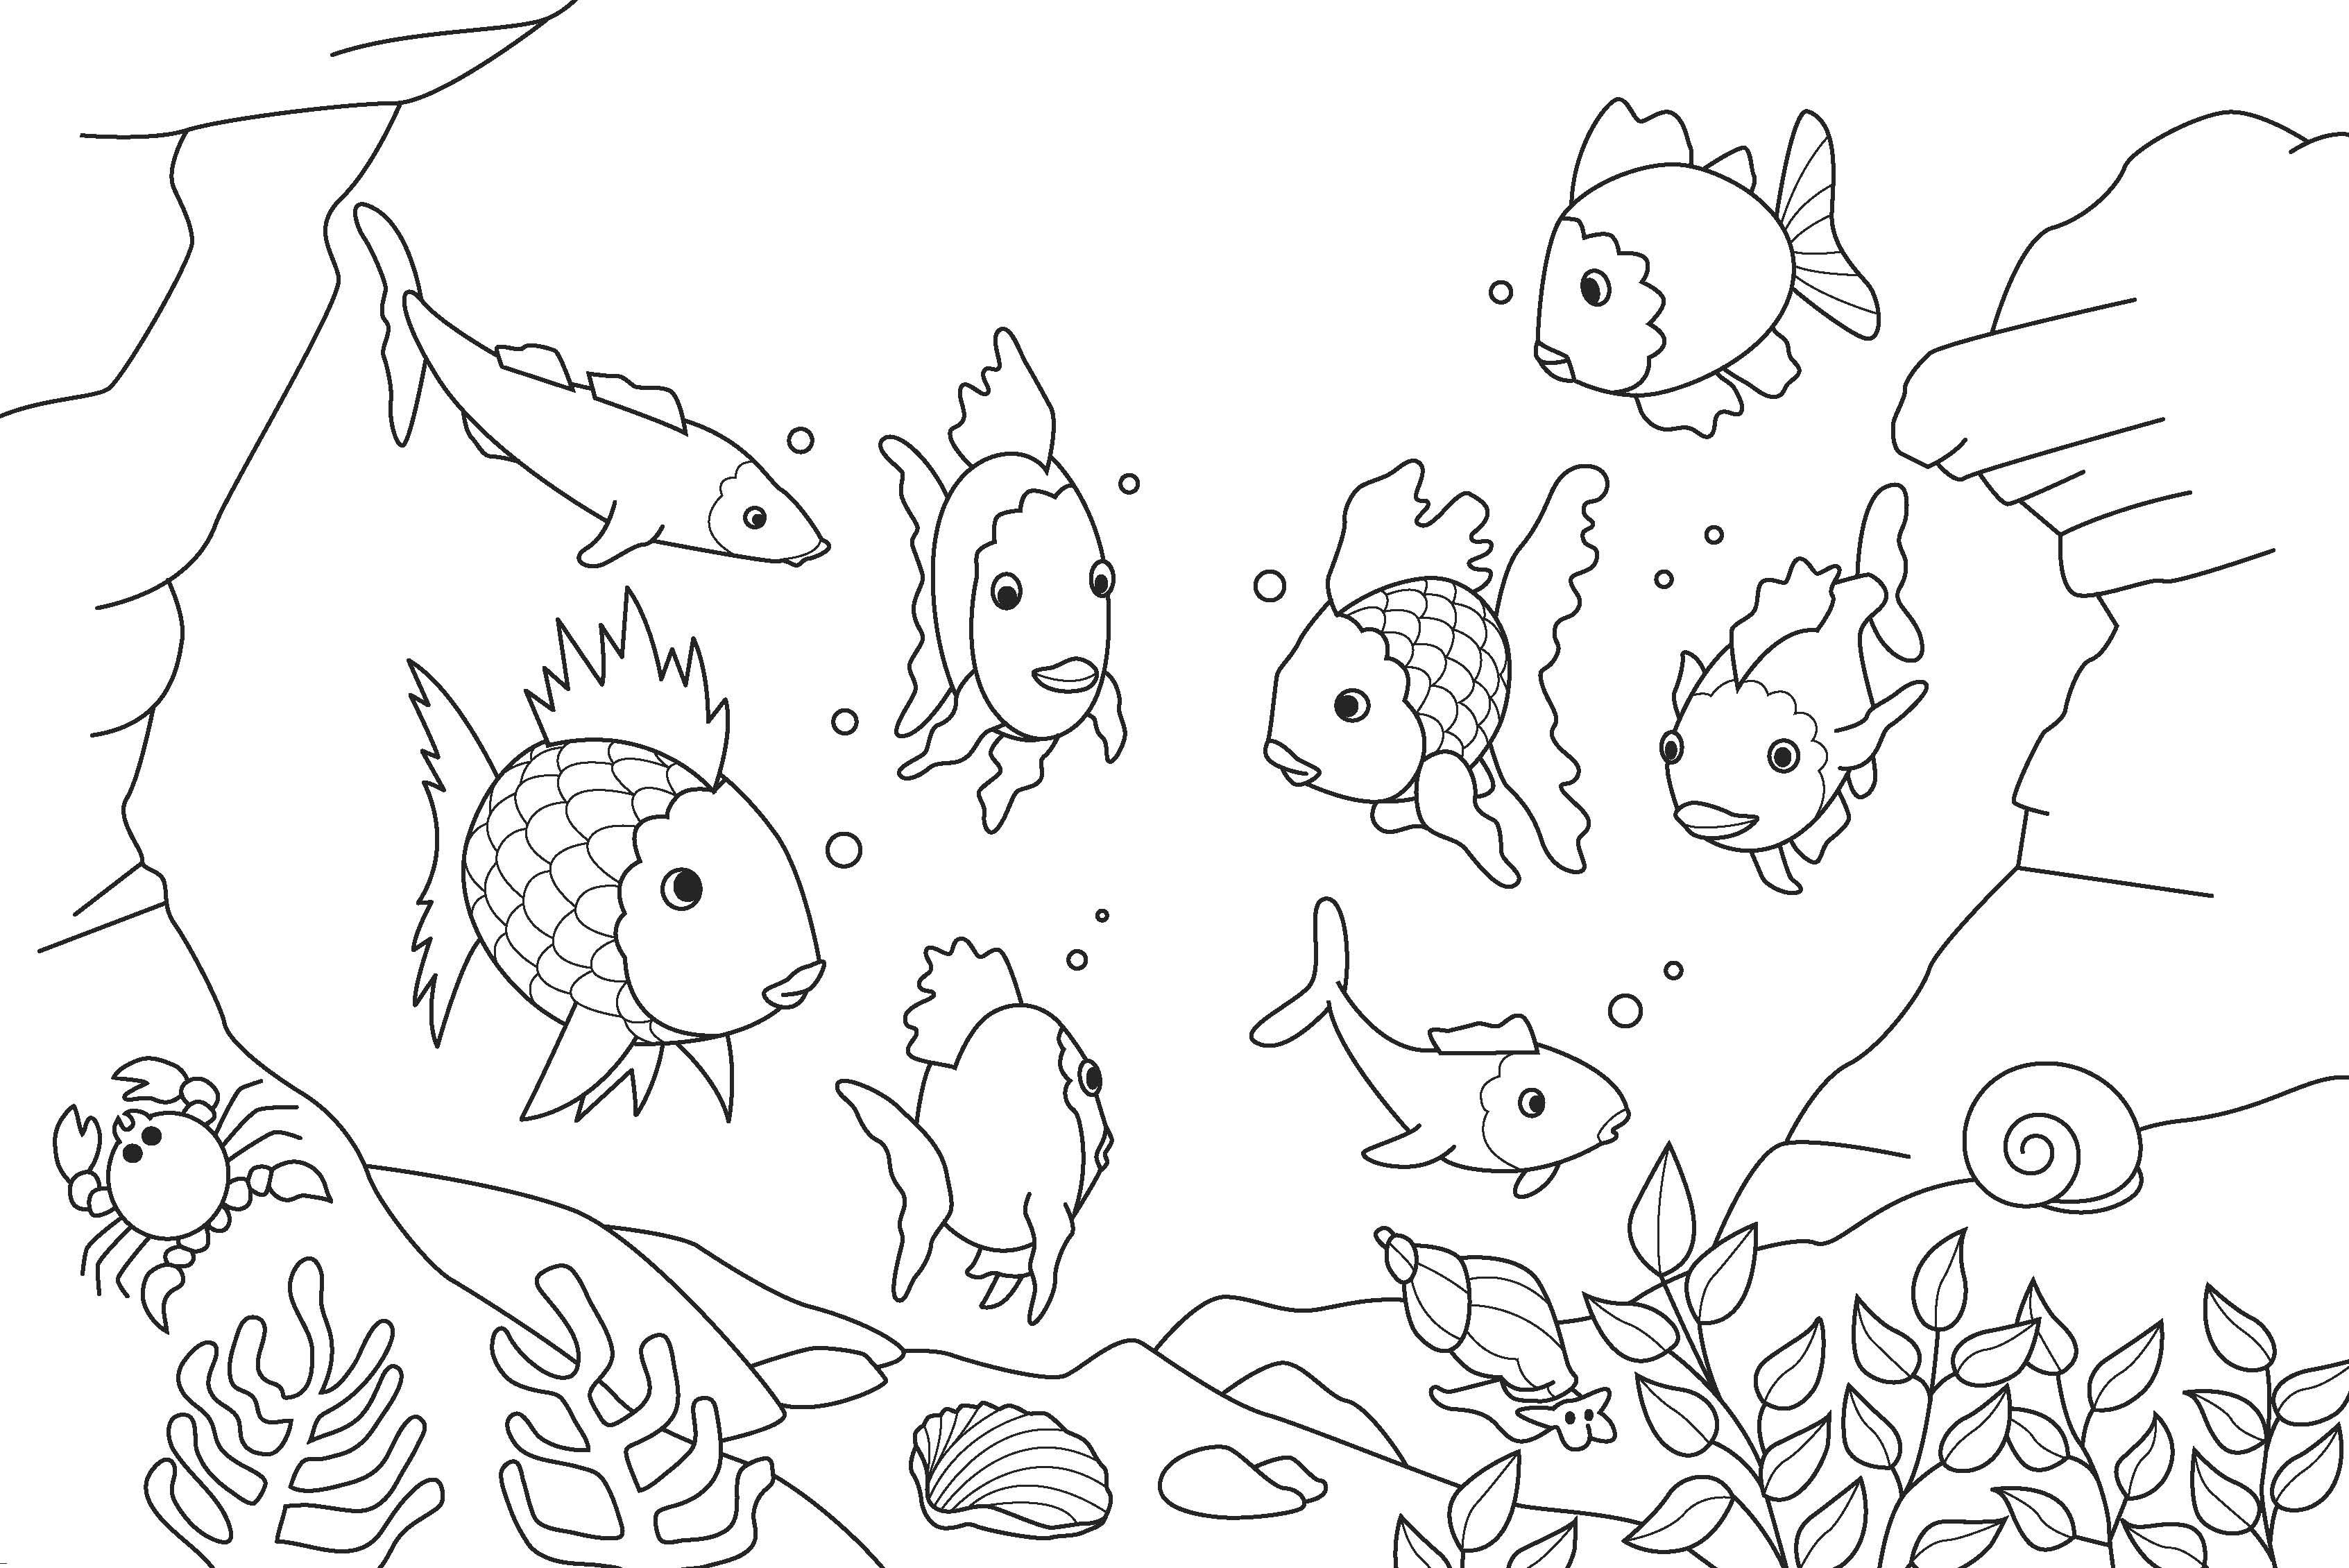 Fish Coloring Pages (7)